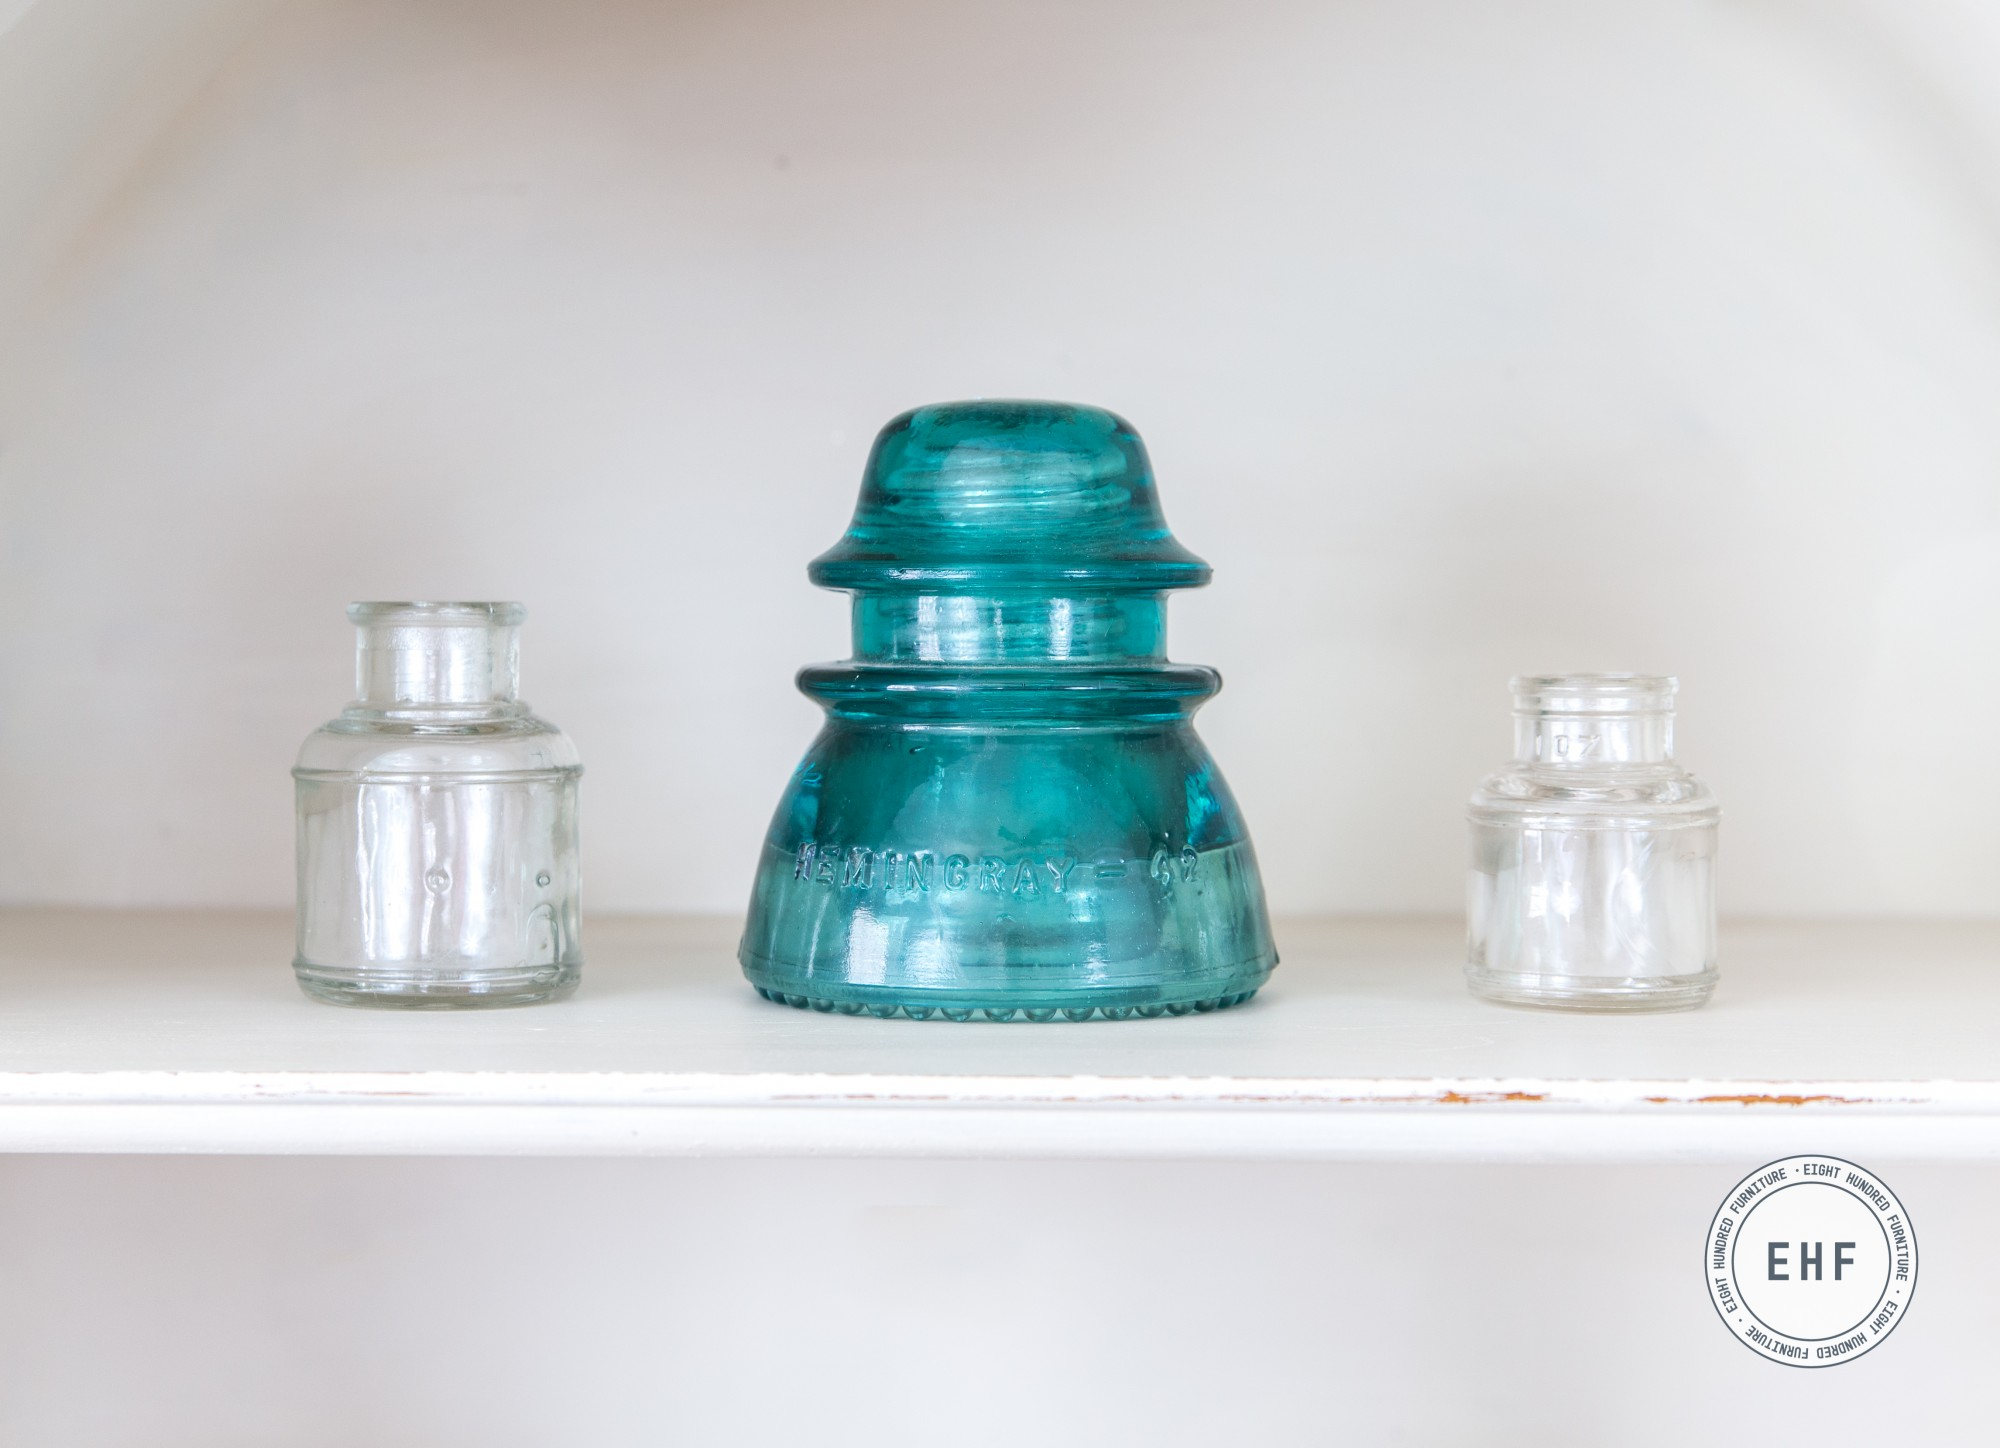 Teal glass Hemmingray Insulator with glass ink well jars